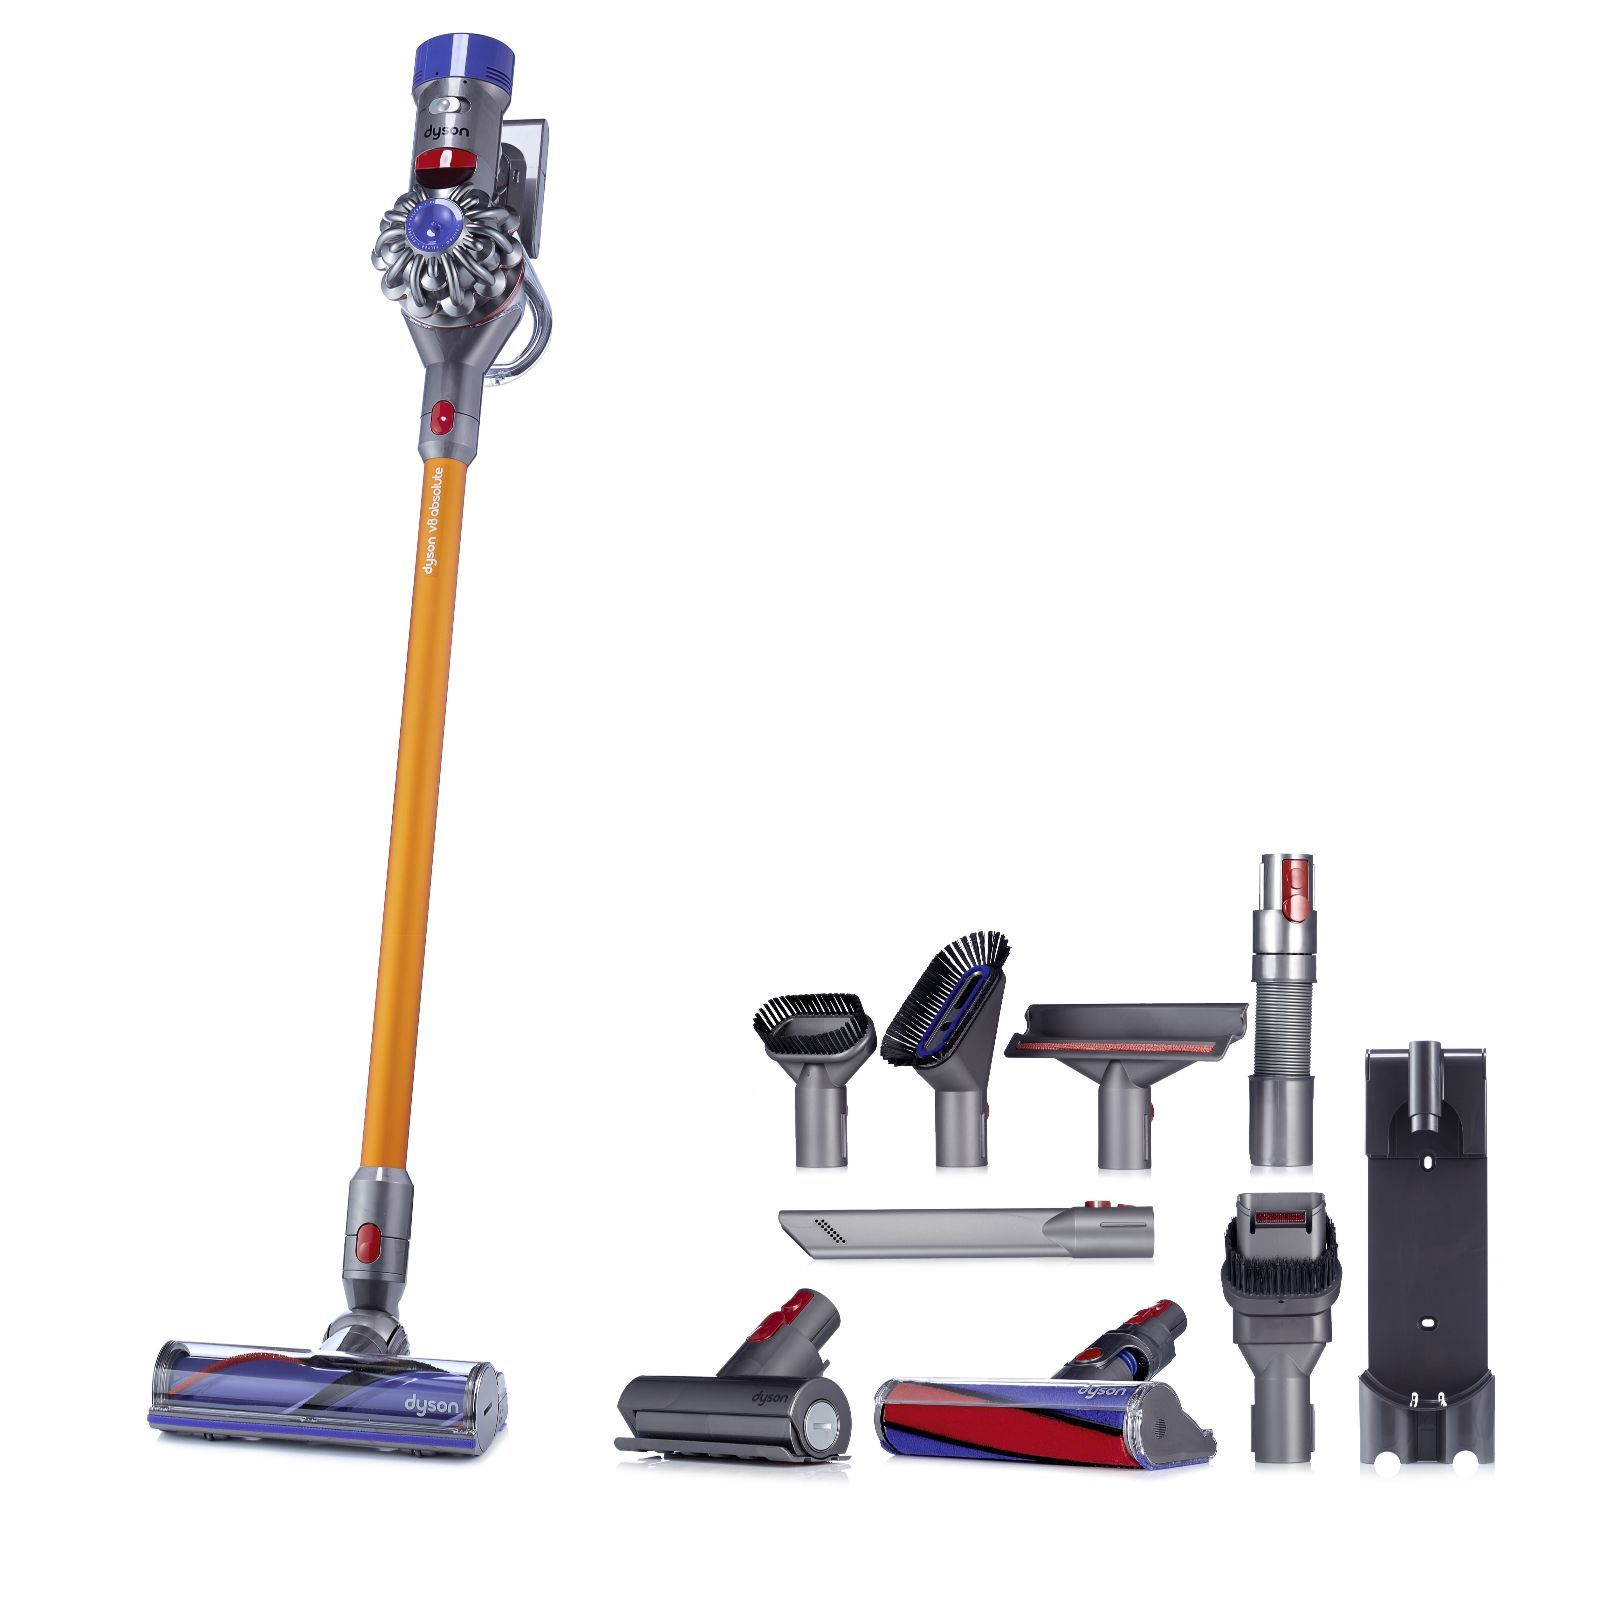 805320 dyson v8 absolute quiet cordless vacuum with 4pc accessory kit qvc price. Black Bedroom Furniture Sets. Home Design Ideas